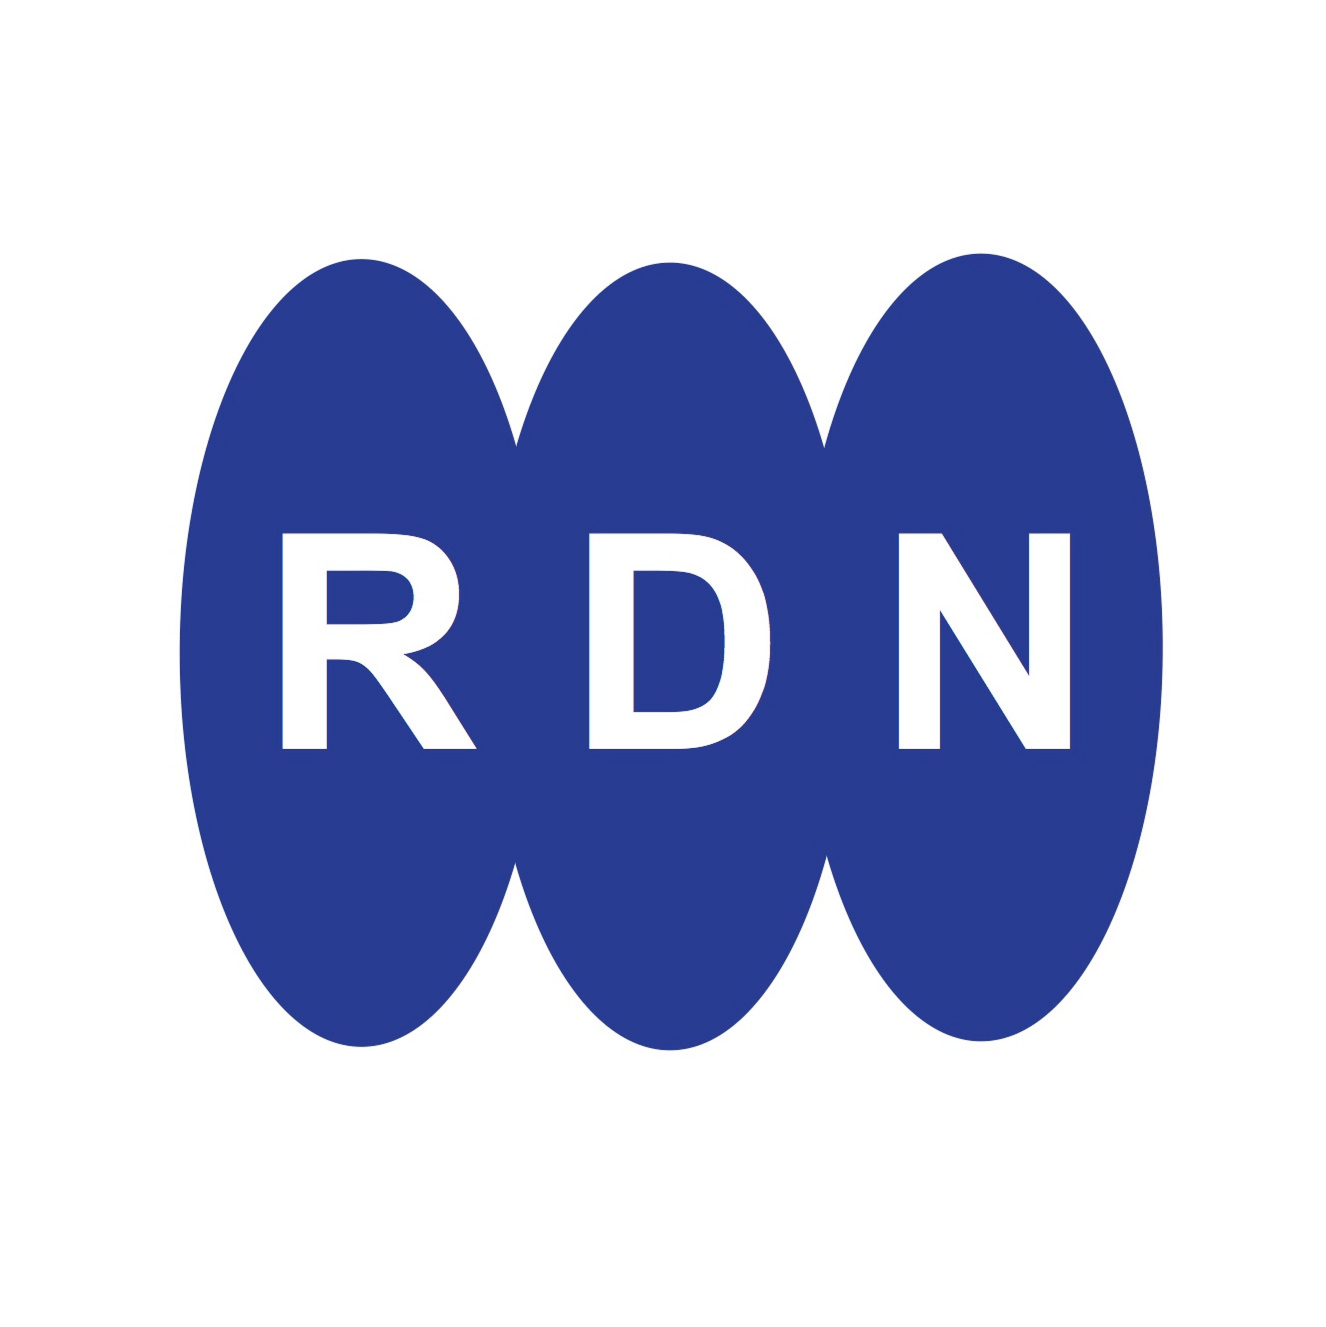 Radio Data Networks Ltd